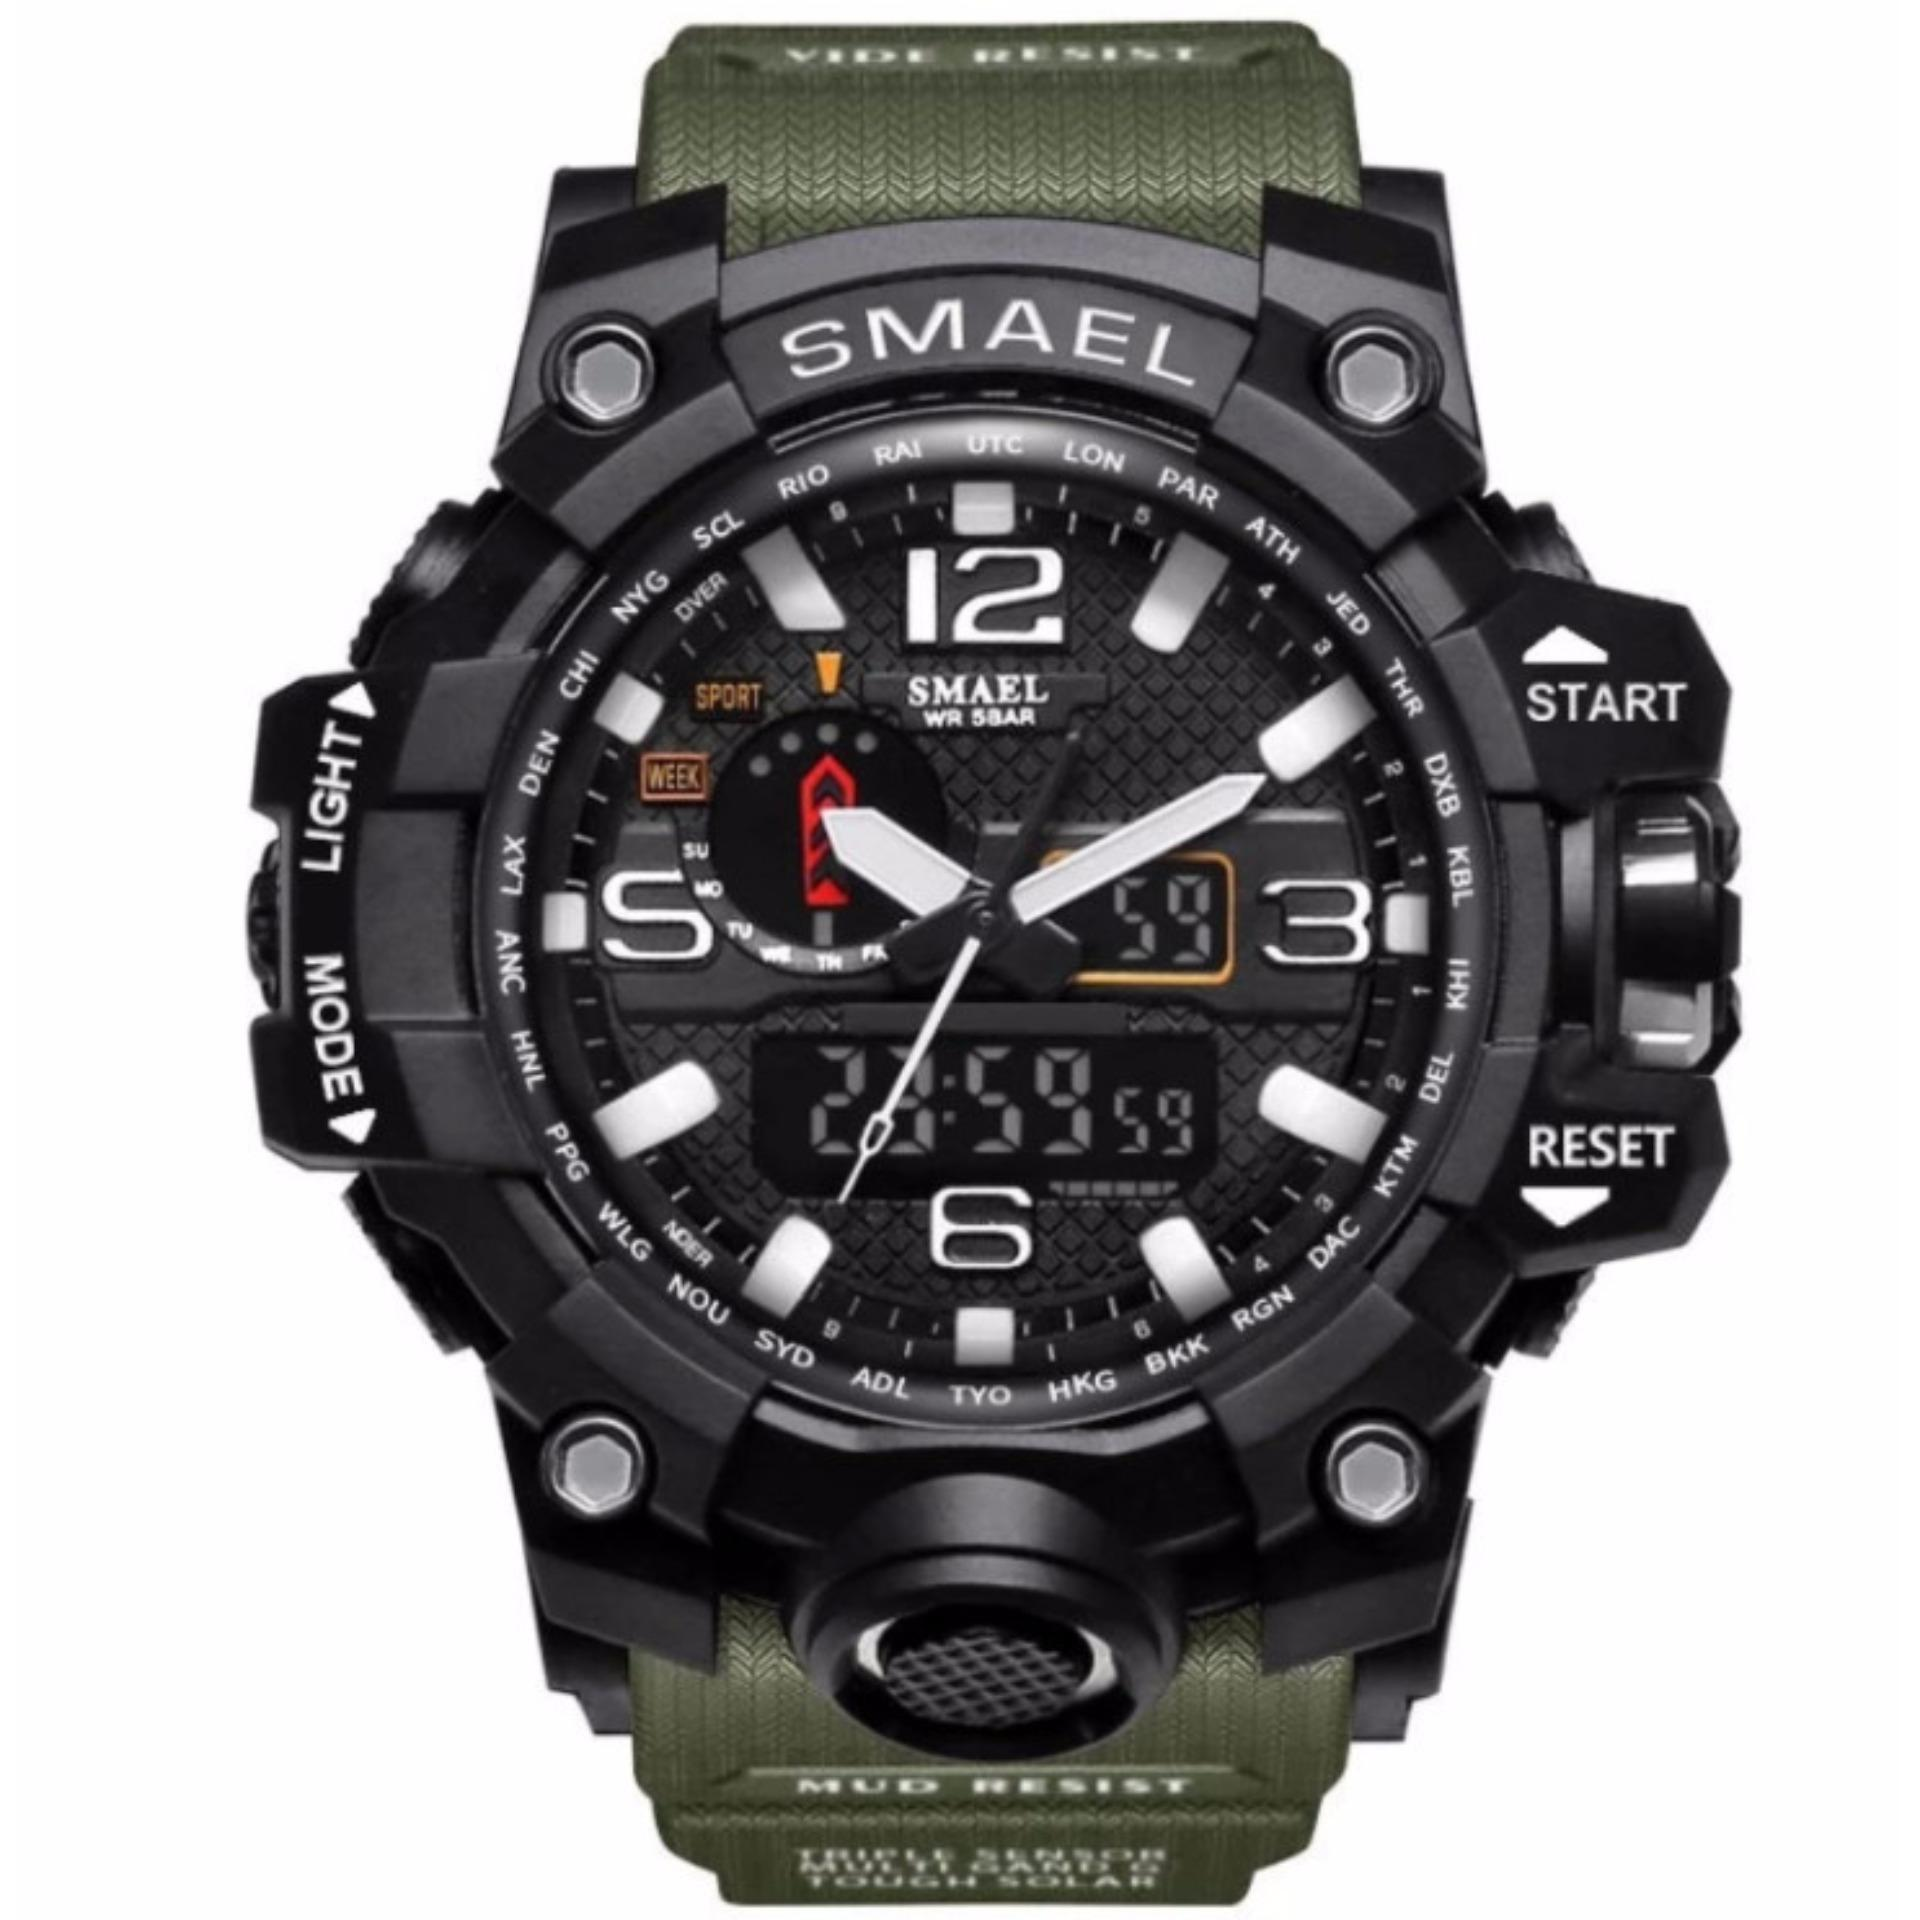 CANADO ⌚️ ĐỒNG HỒ LÍNH THỦY ĐÁNH BỘ CỦA MỸ – SMAEL Watch 1545 S-SHOCK Series of Gold Jungle Luxury Style Outdoor Sports Mens Dual Display Electronics Watch